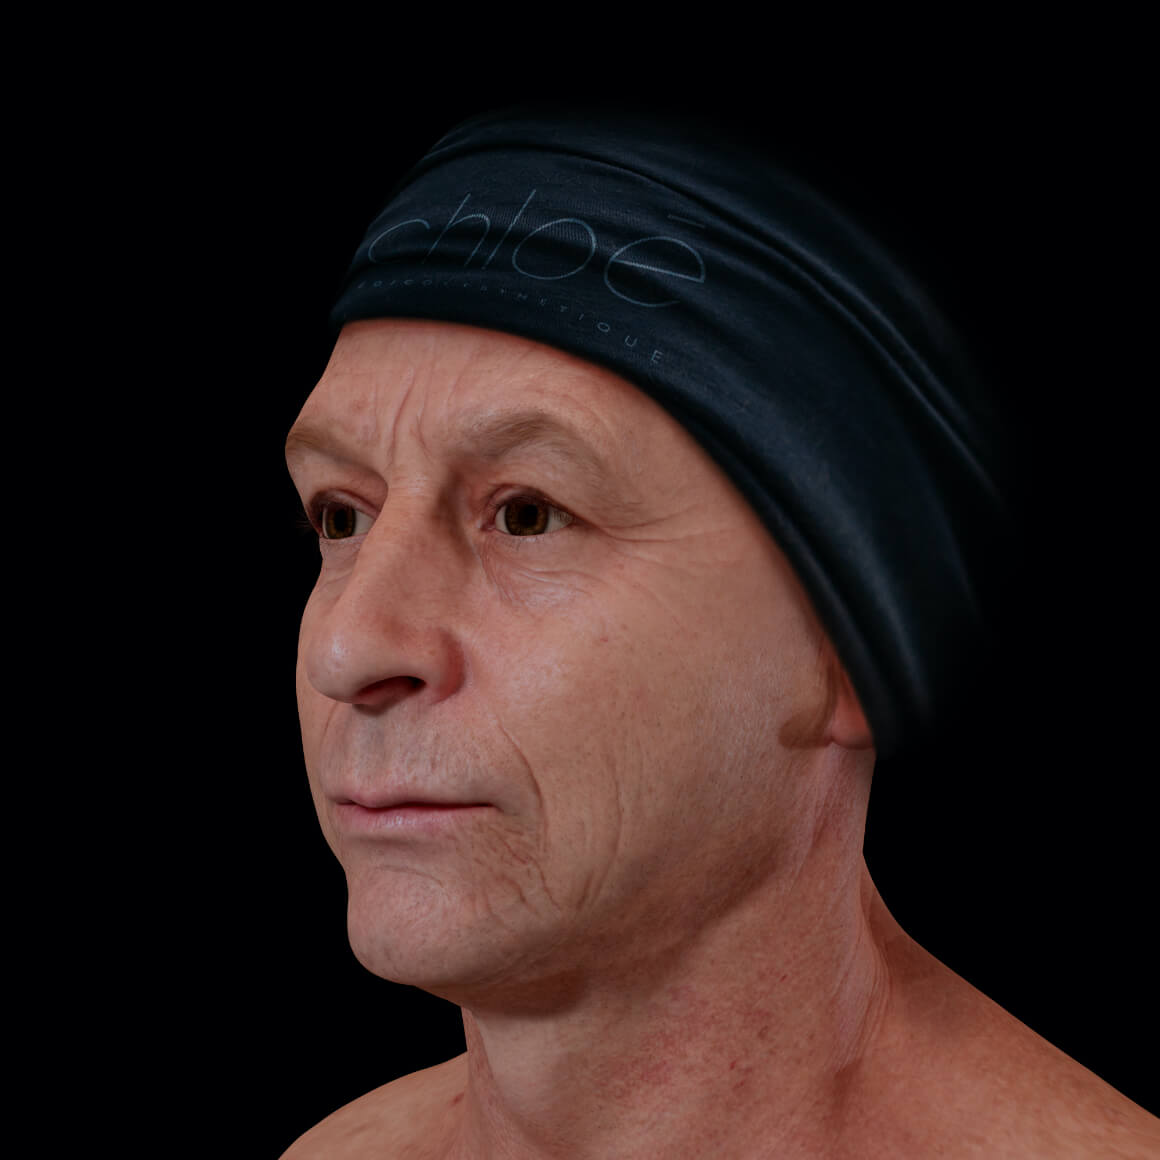 Male patient from Clinique Chloé positioned at an angle showing facial skin laxity